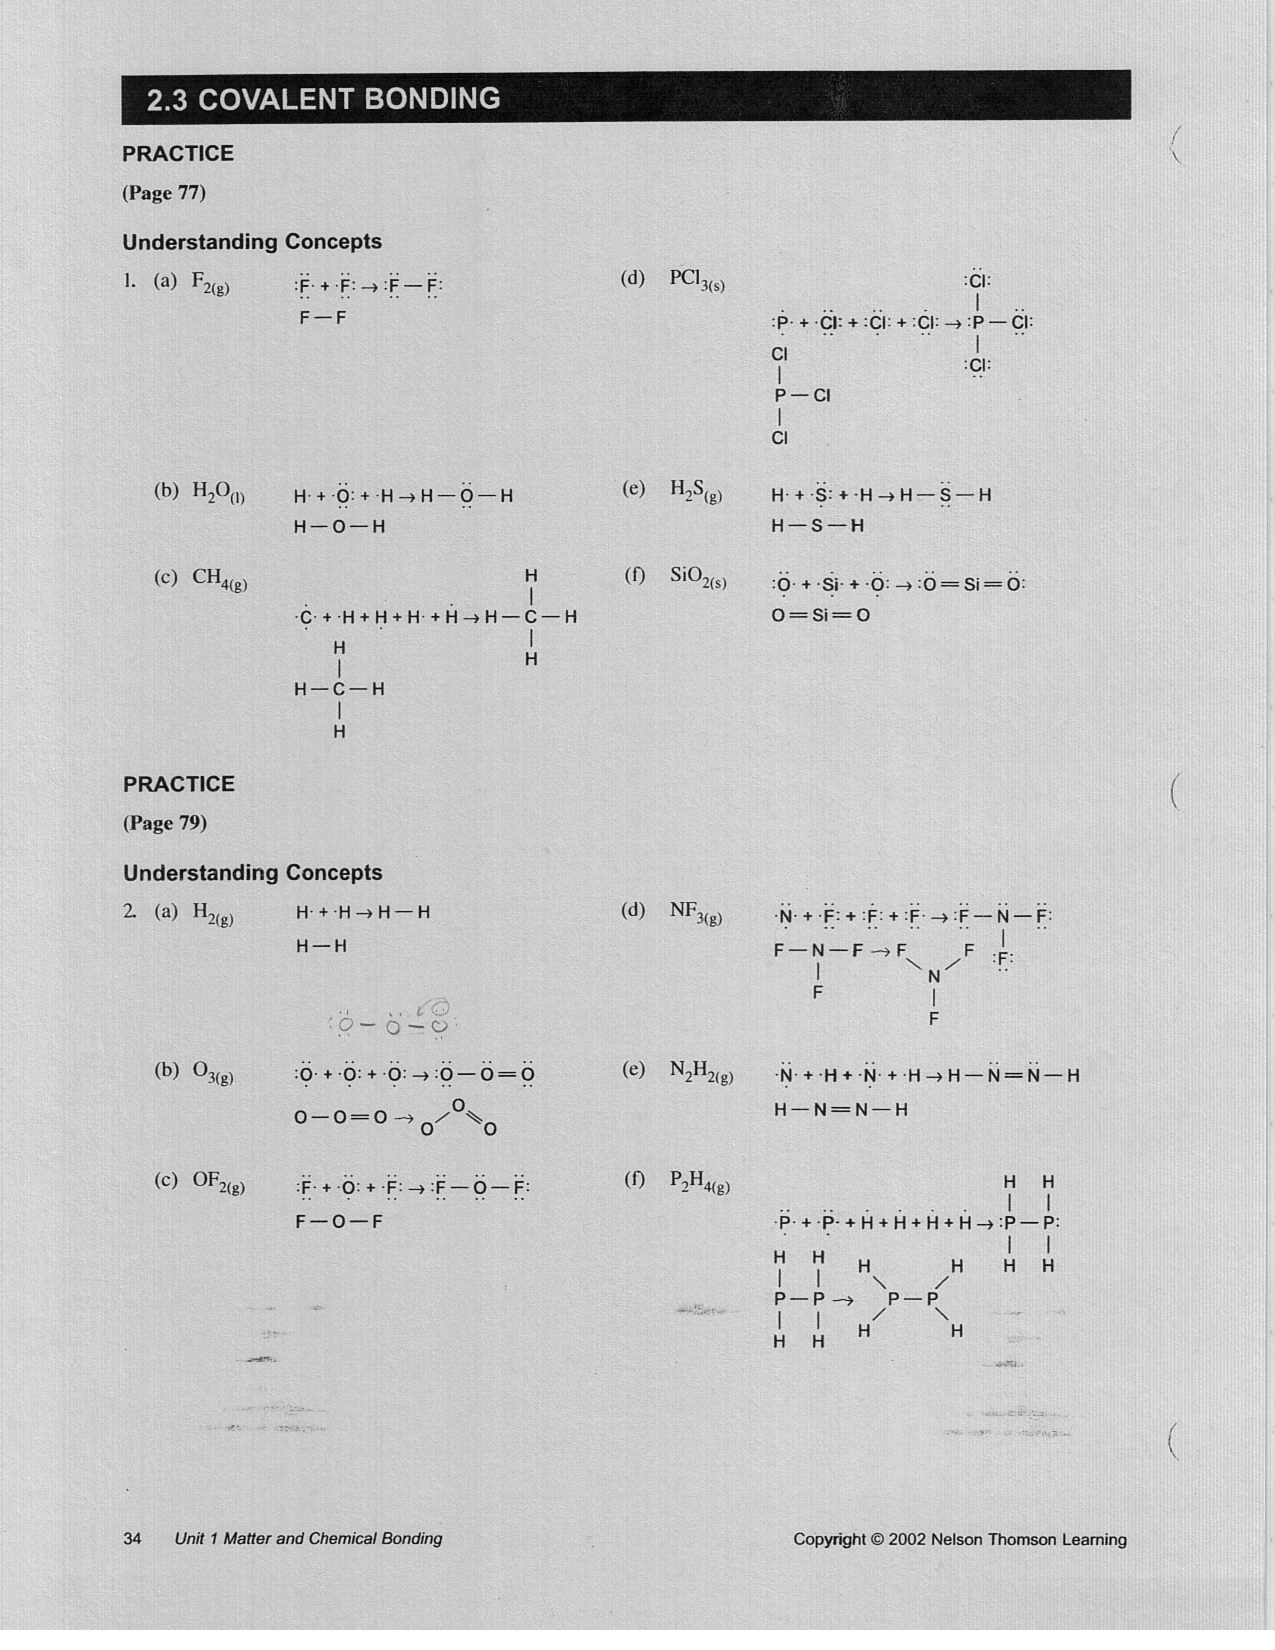 Mathball Grade 11 Chemistry Sem 1 12 13